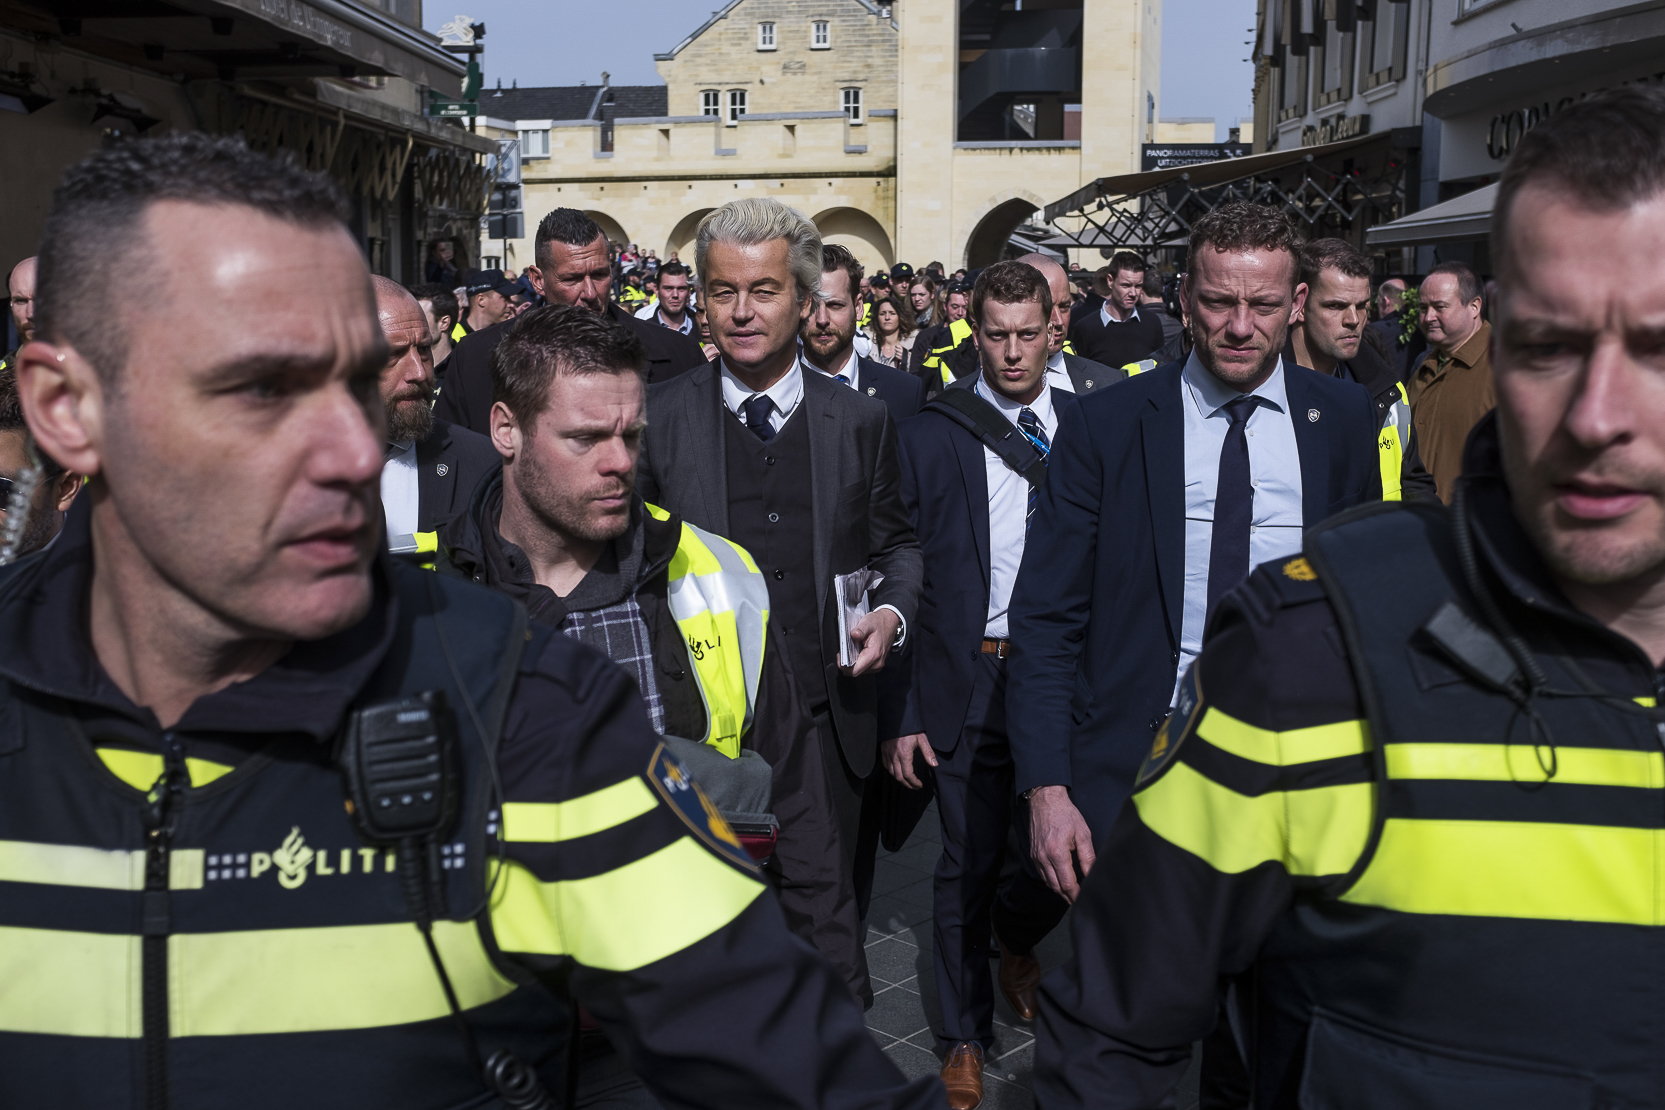 Firebrand anti-Islam lawmaker Geert Wilders is surrounded by his security during a campaign rally for the Dutch general elections in Heerlen, Netherlands, on March 11, 2017.